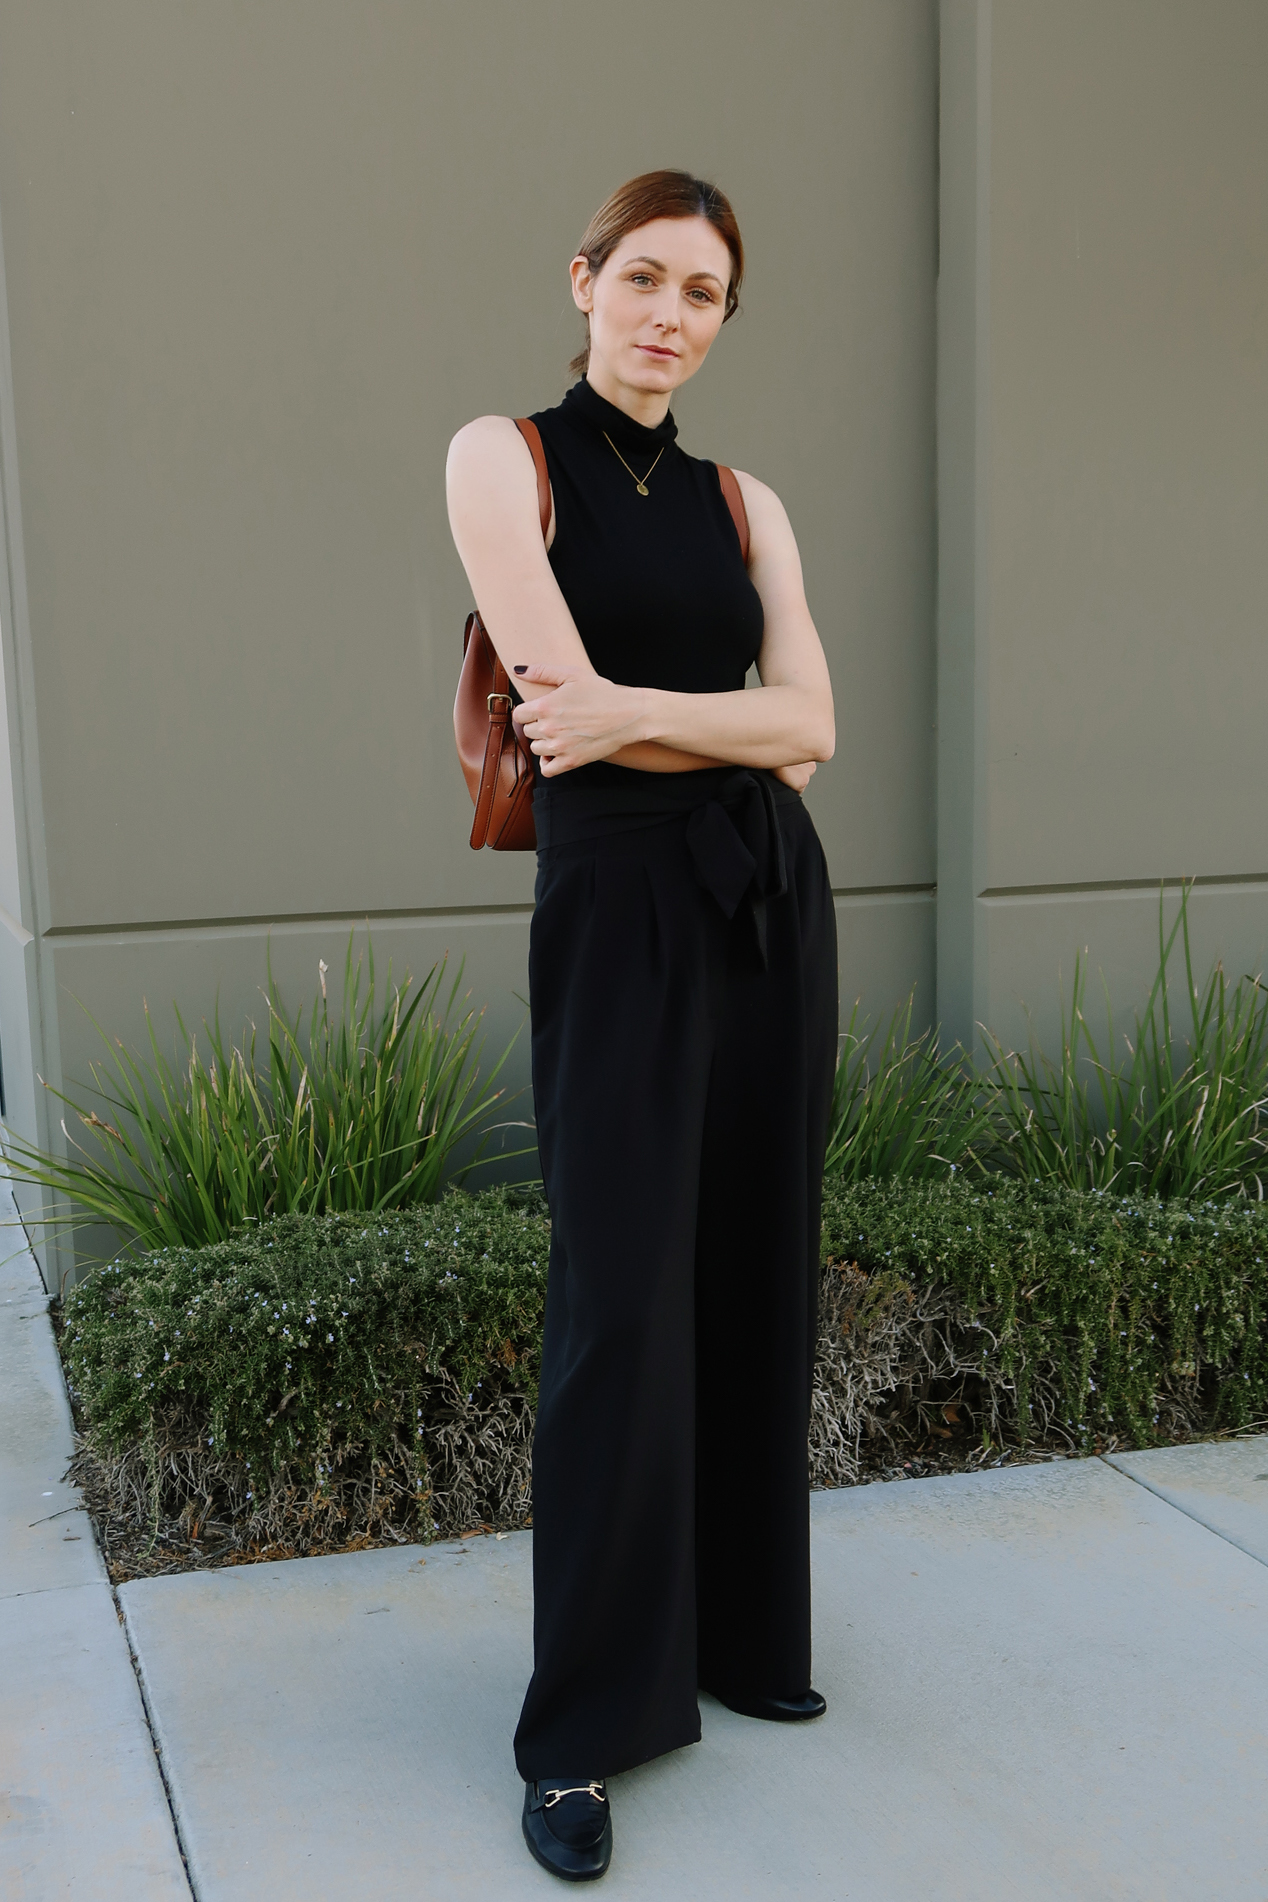 Wide-leg trousers casual outfit | Easy Casual Outfits To Try Right Now by popular California fashion blog, Tea Cups and Tulips: image of a woman outside wearing an Asos top, SheIn Paperbag Waist Slant Pocket Wide Leg Pants, and Amazon Happiness Boutique Circle Necklace.